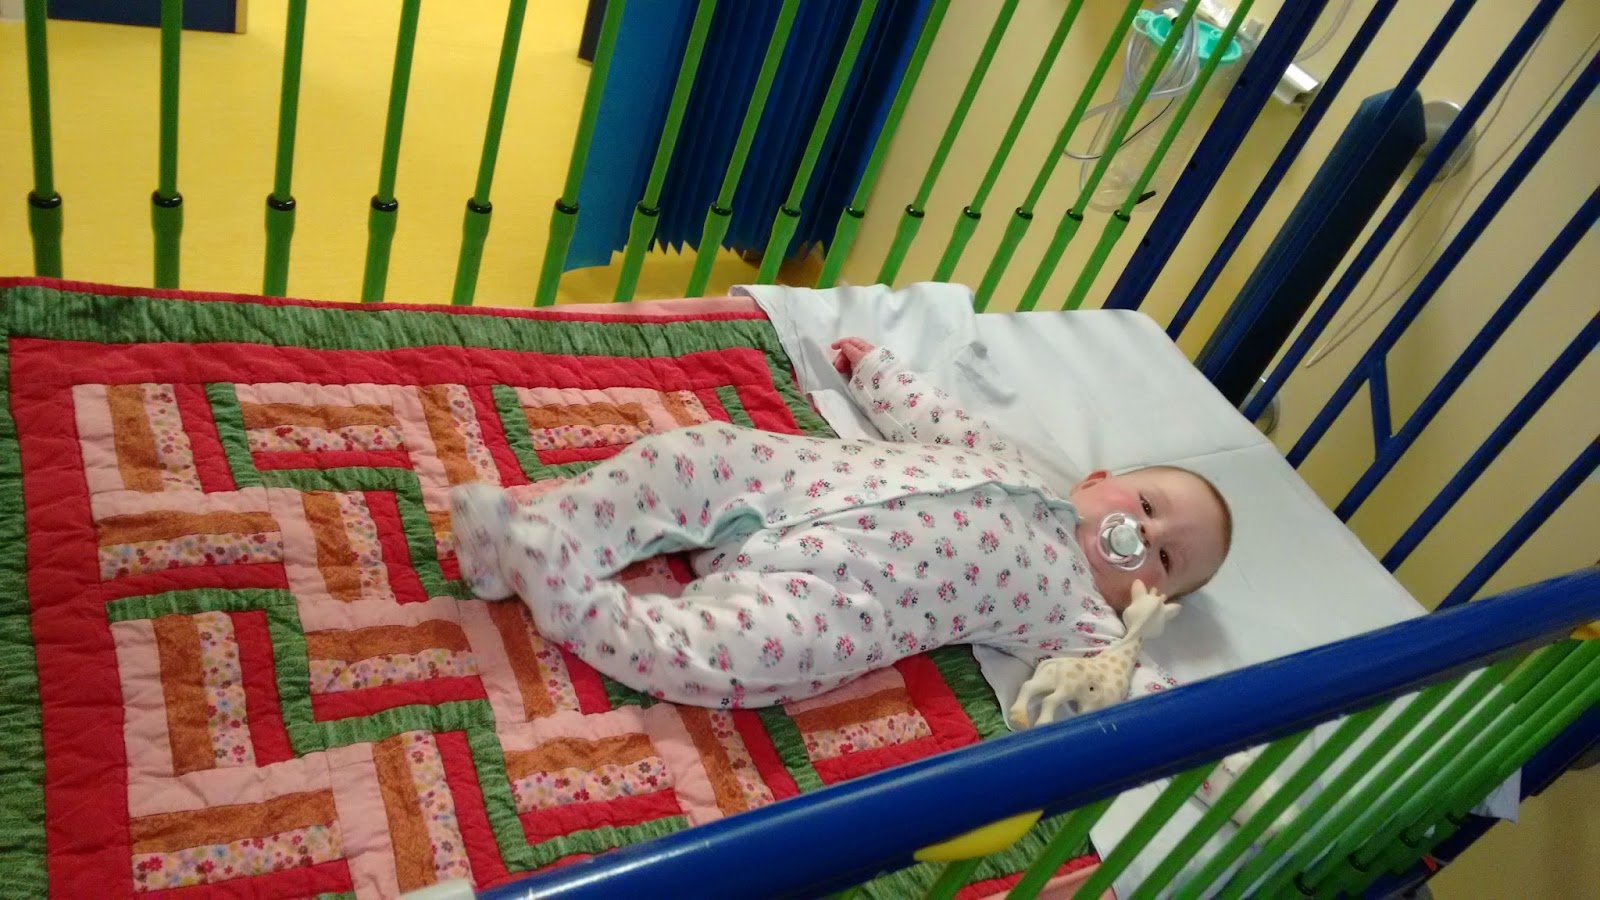 baby in hospital